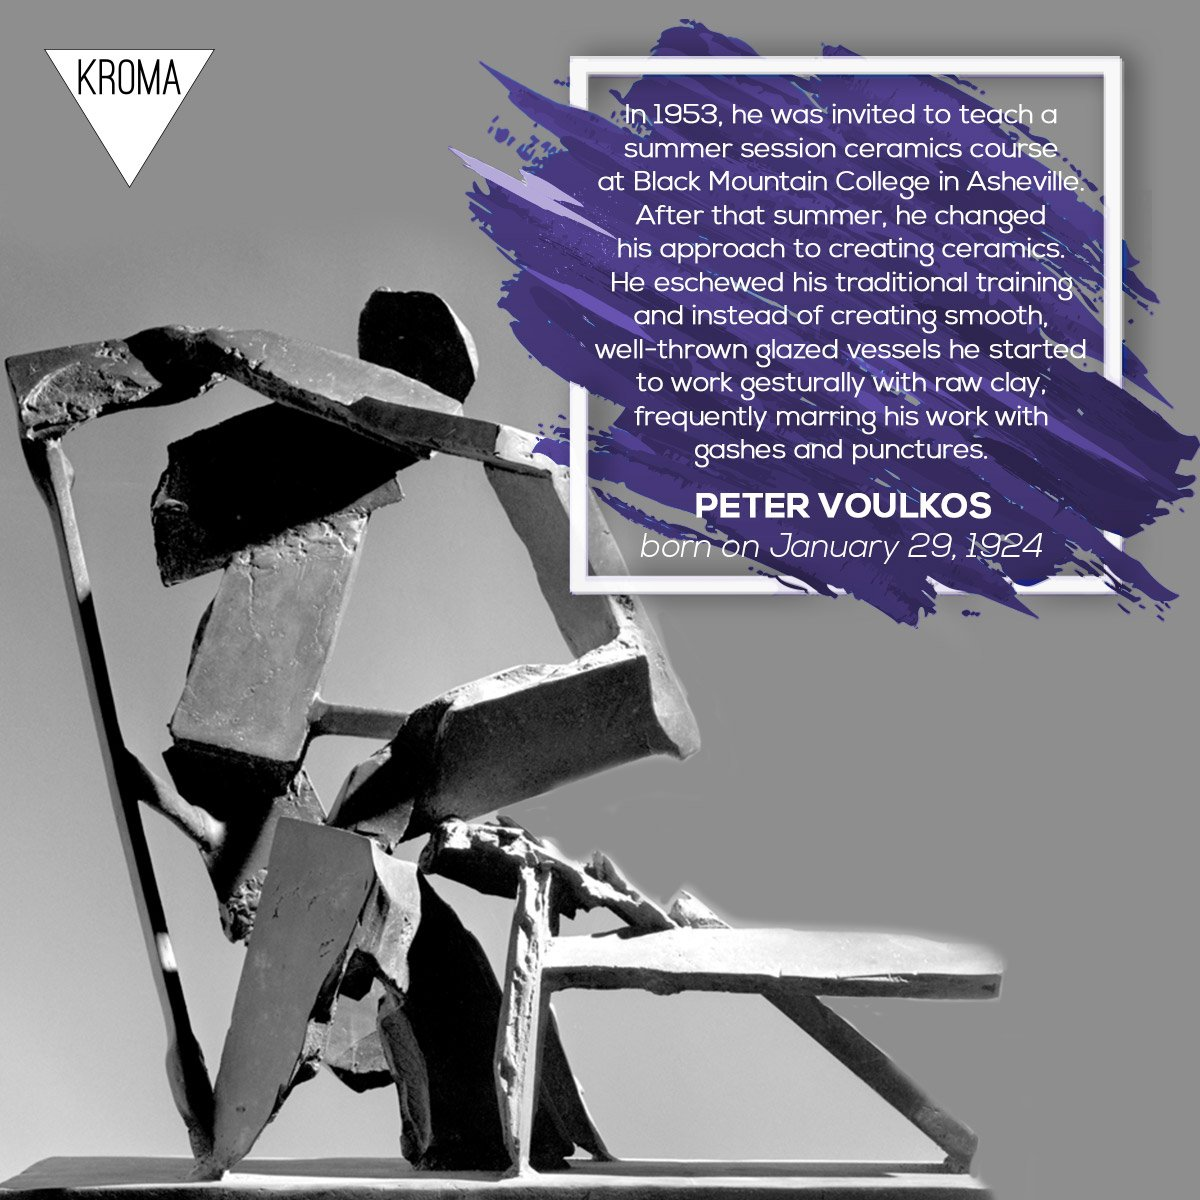 Kroma Art Magazine On Twitter 29 1 Born Today Petervoulkos Was An American Artist Of Greek Descent Known For His Abstract Expressionist Ceramic Sculptures Which Crossed The Traditional Divide Between Ceramic Crafts